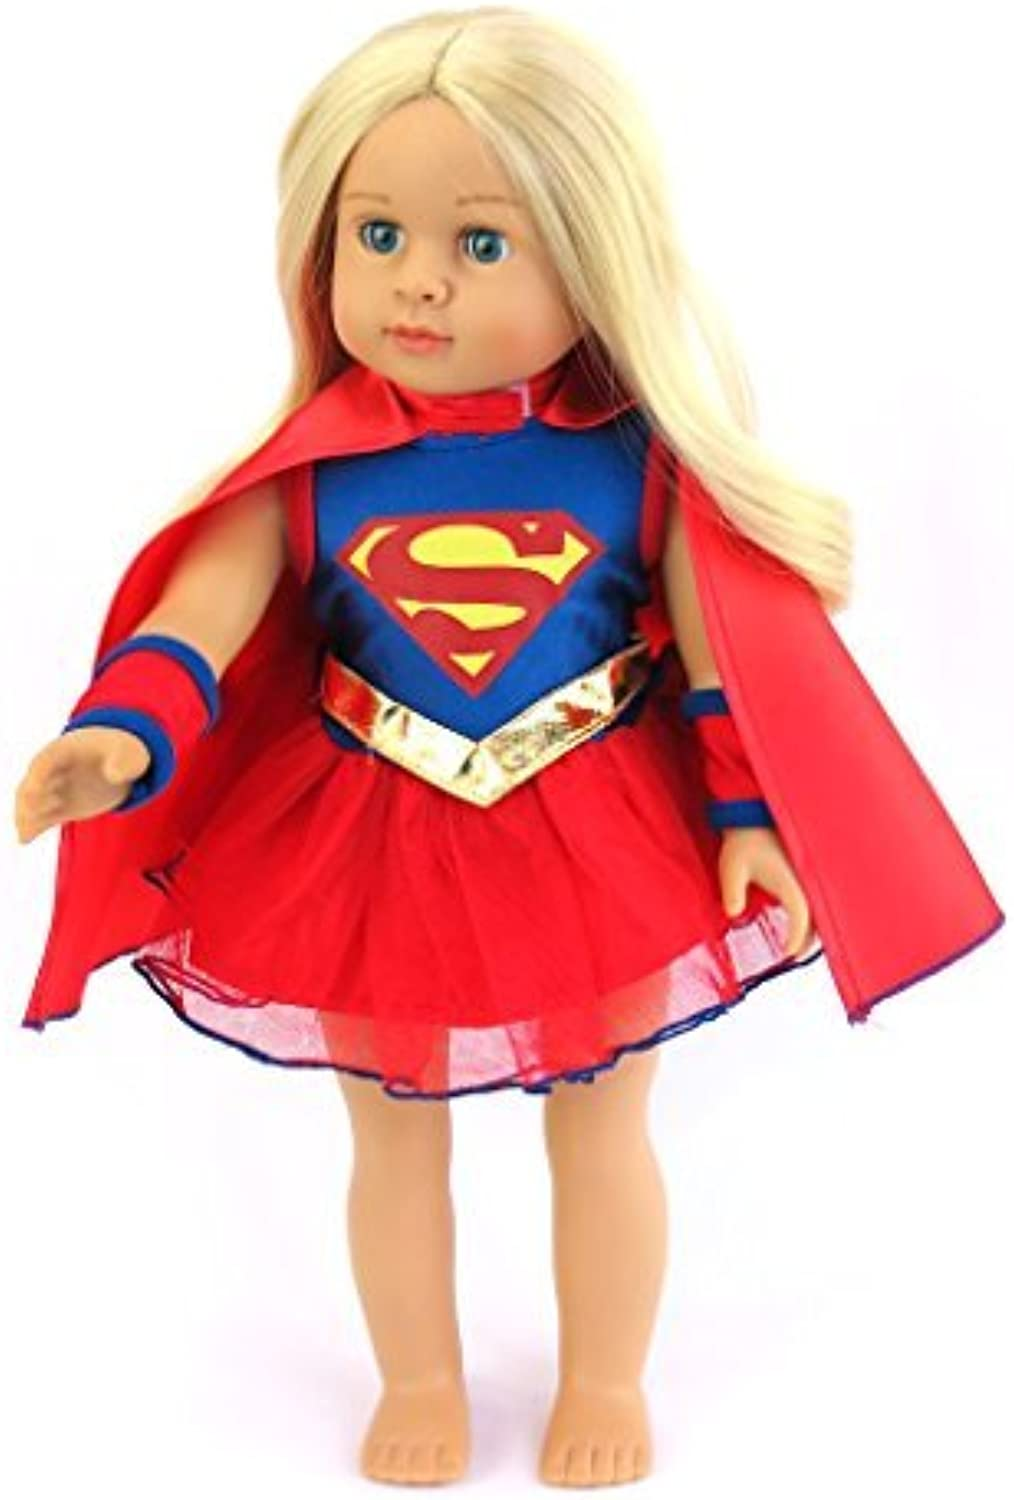 18 Inch Doll Clothes  Super Girl Costume Fits 18 American Girl Dolls, Madame Alexander, Our Generation, etc. Great Quality  Beautiful Fabrics DOLL NOT INCLUDED by American Fashion World